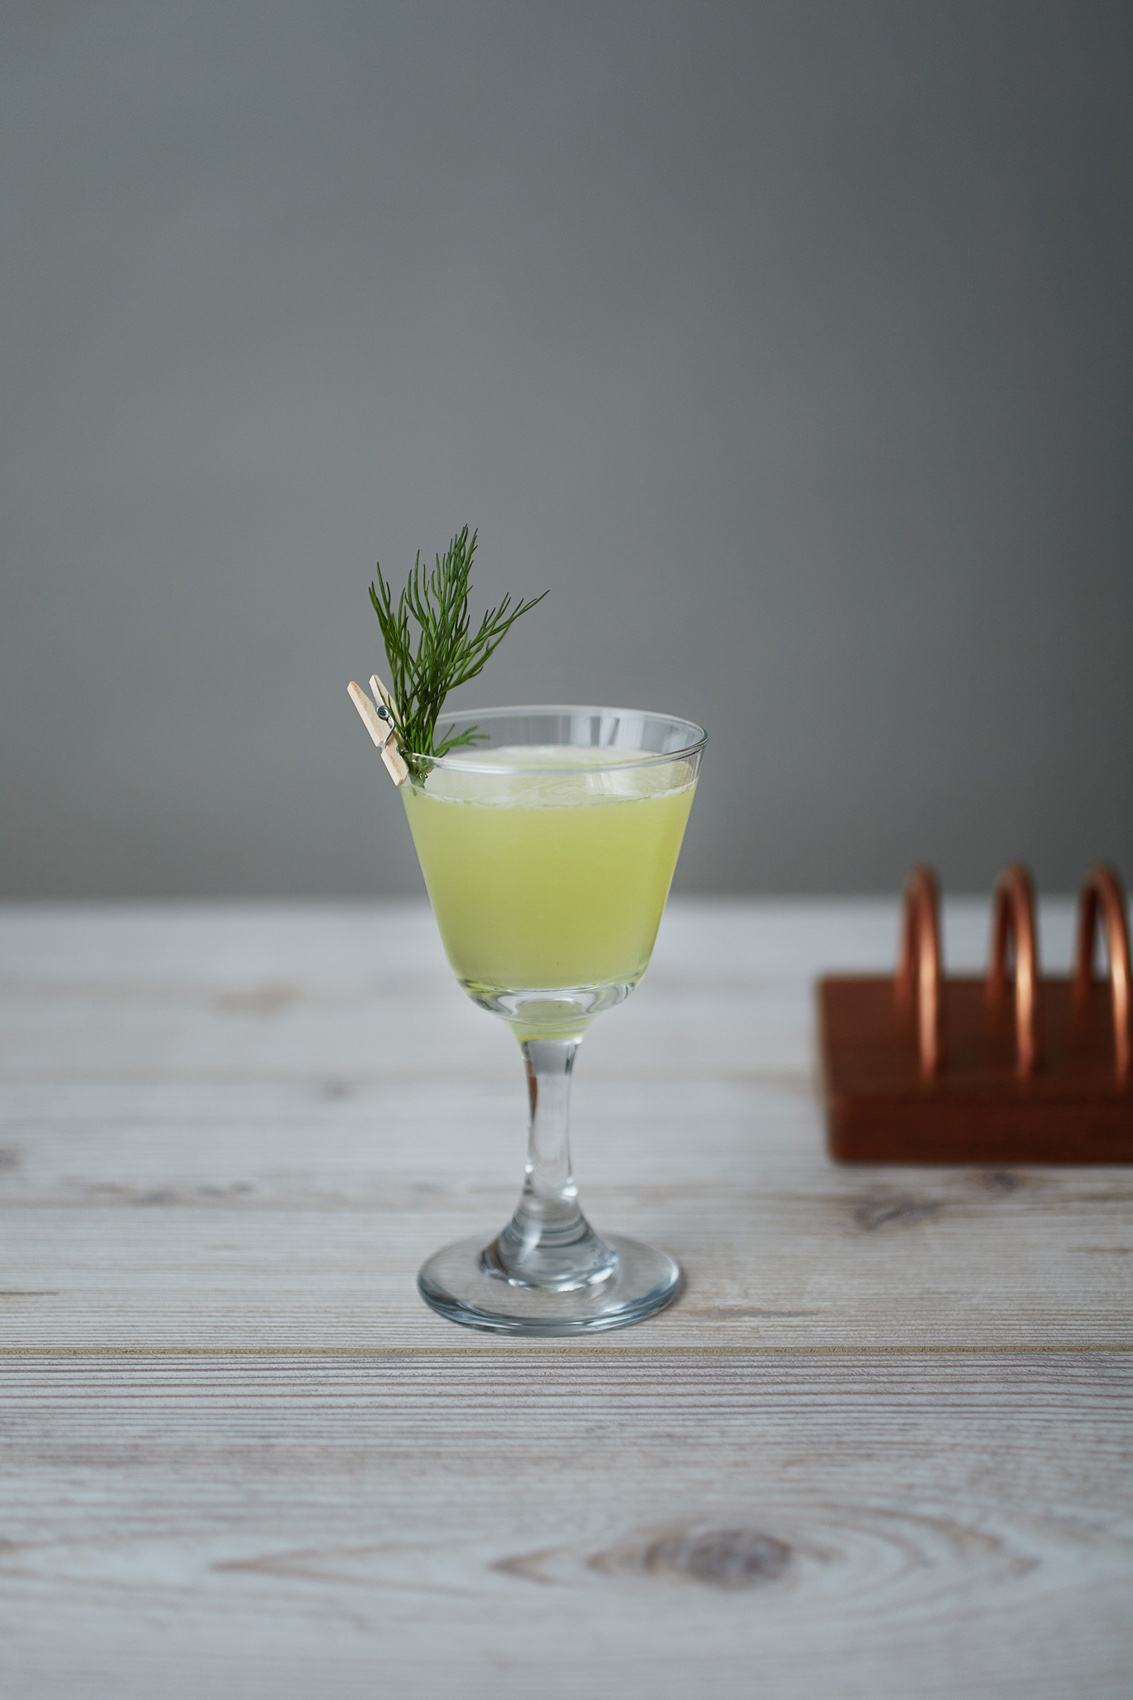 21_12_15_Cocktails_Seedlip4748_W2